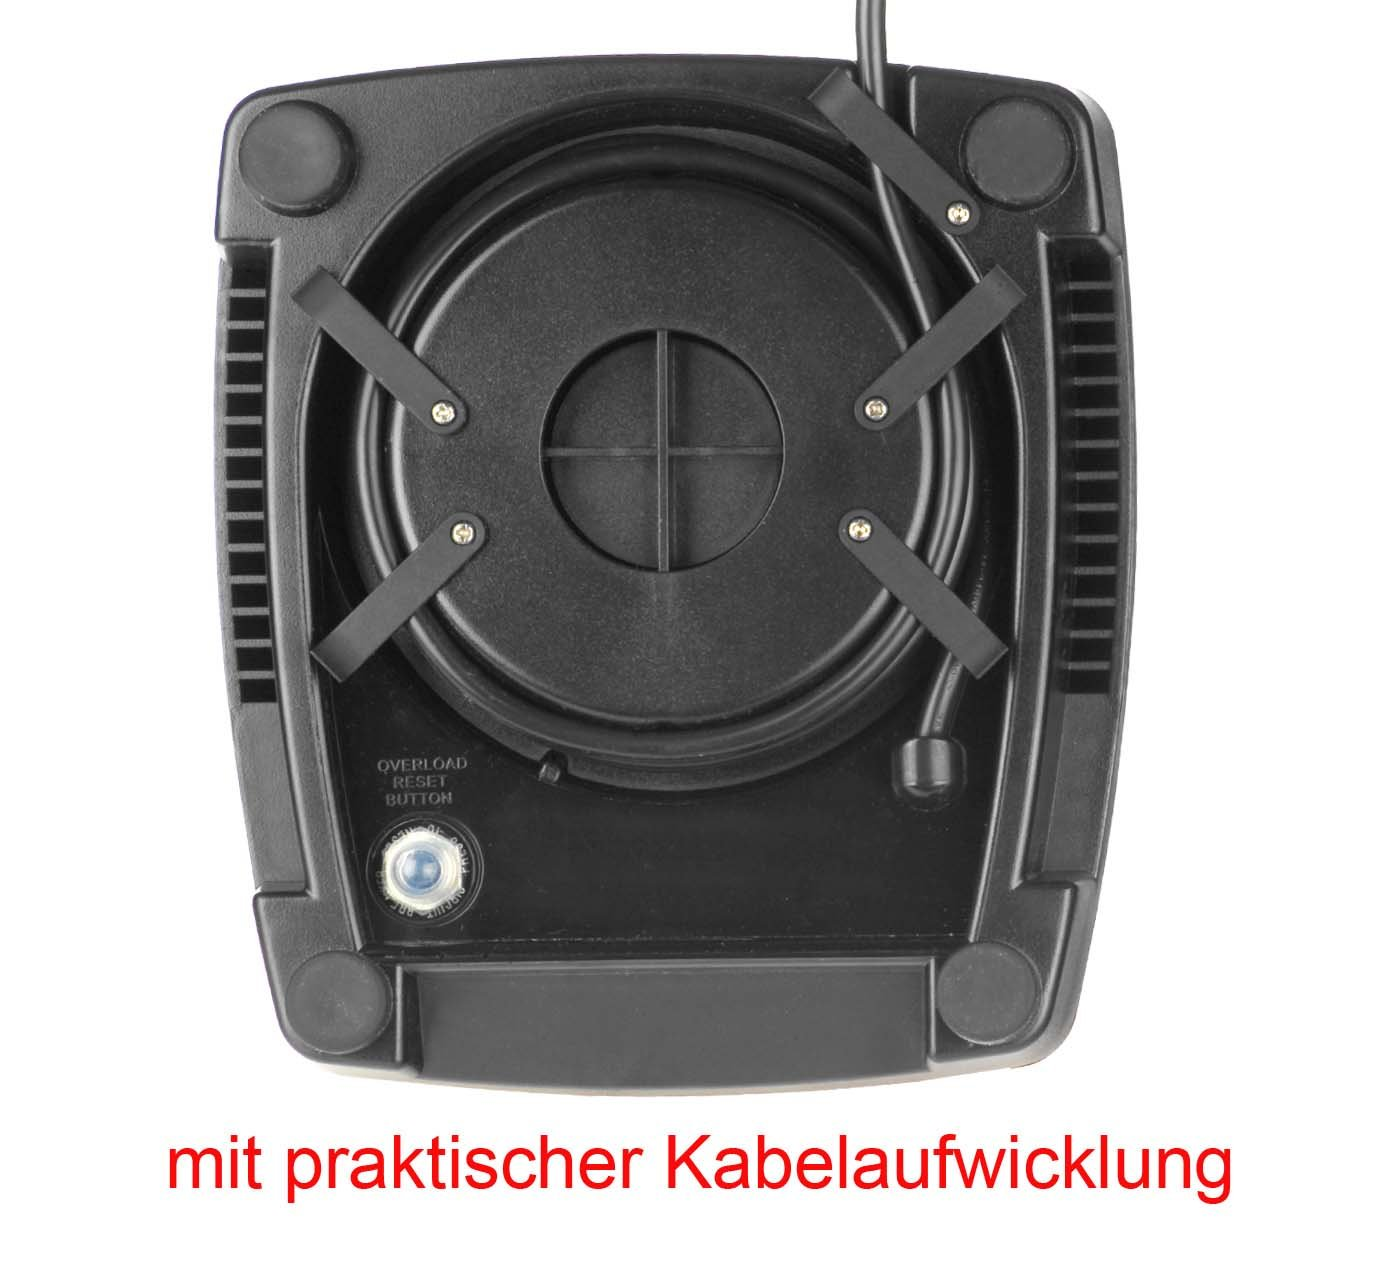 Profi-YaYago-Smoothie-Maker-Power-Mixer-Blender-Icecrusher-mit-Edelstahlmesser-bis-zu-38000-UmdrehungenMinute-ideal-fr-Smoothies